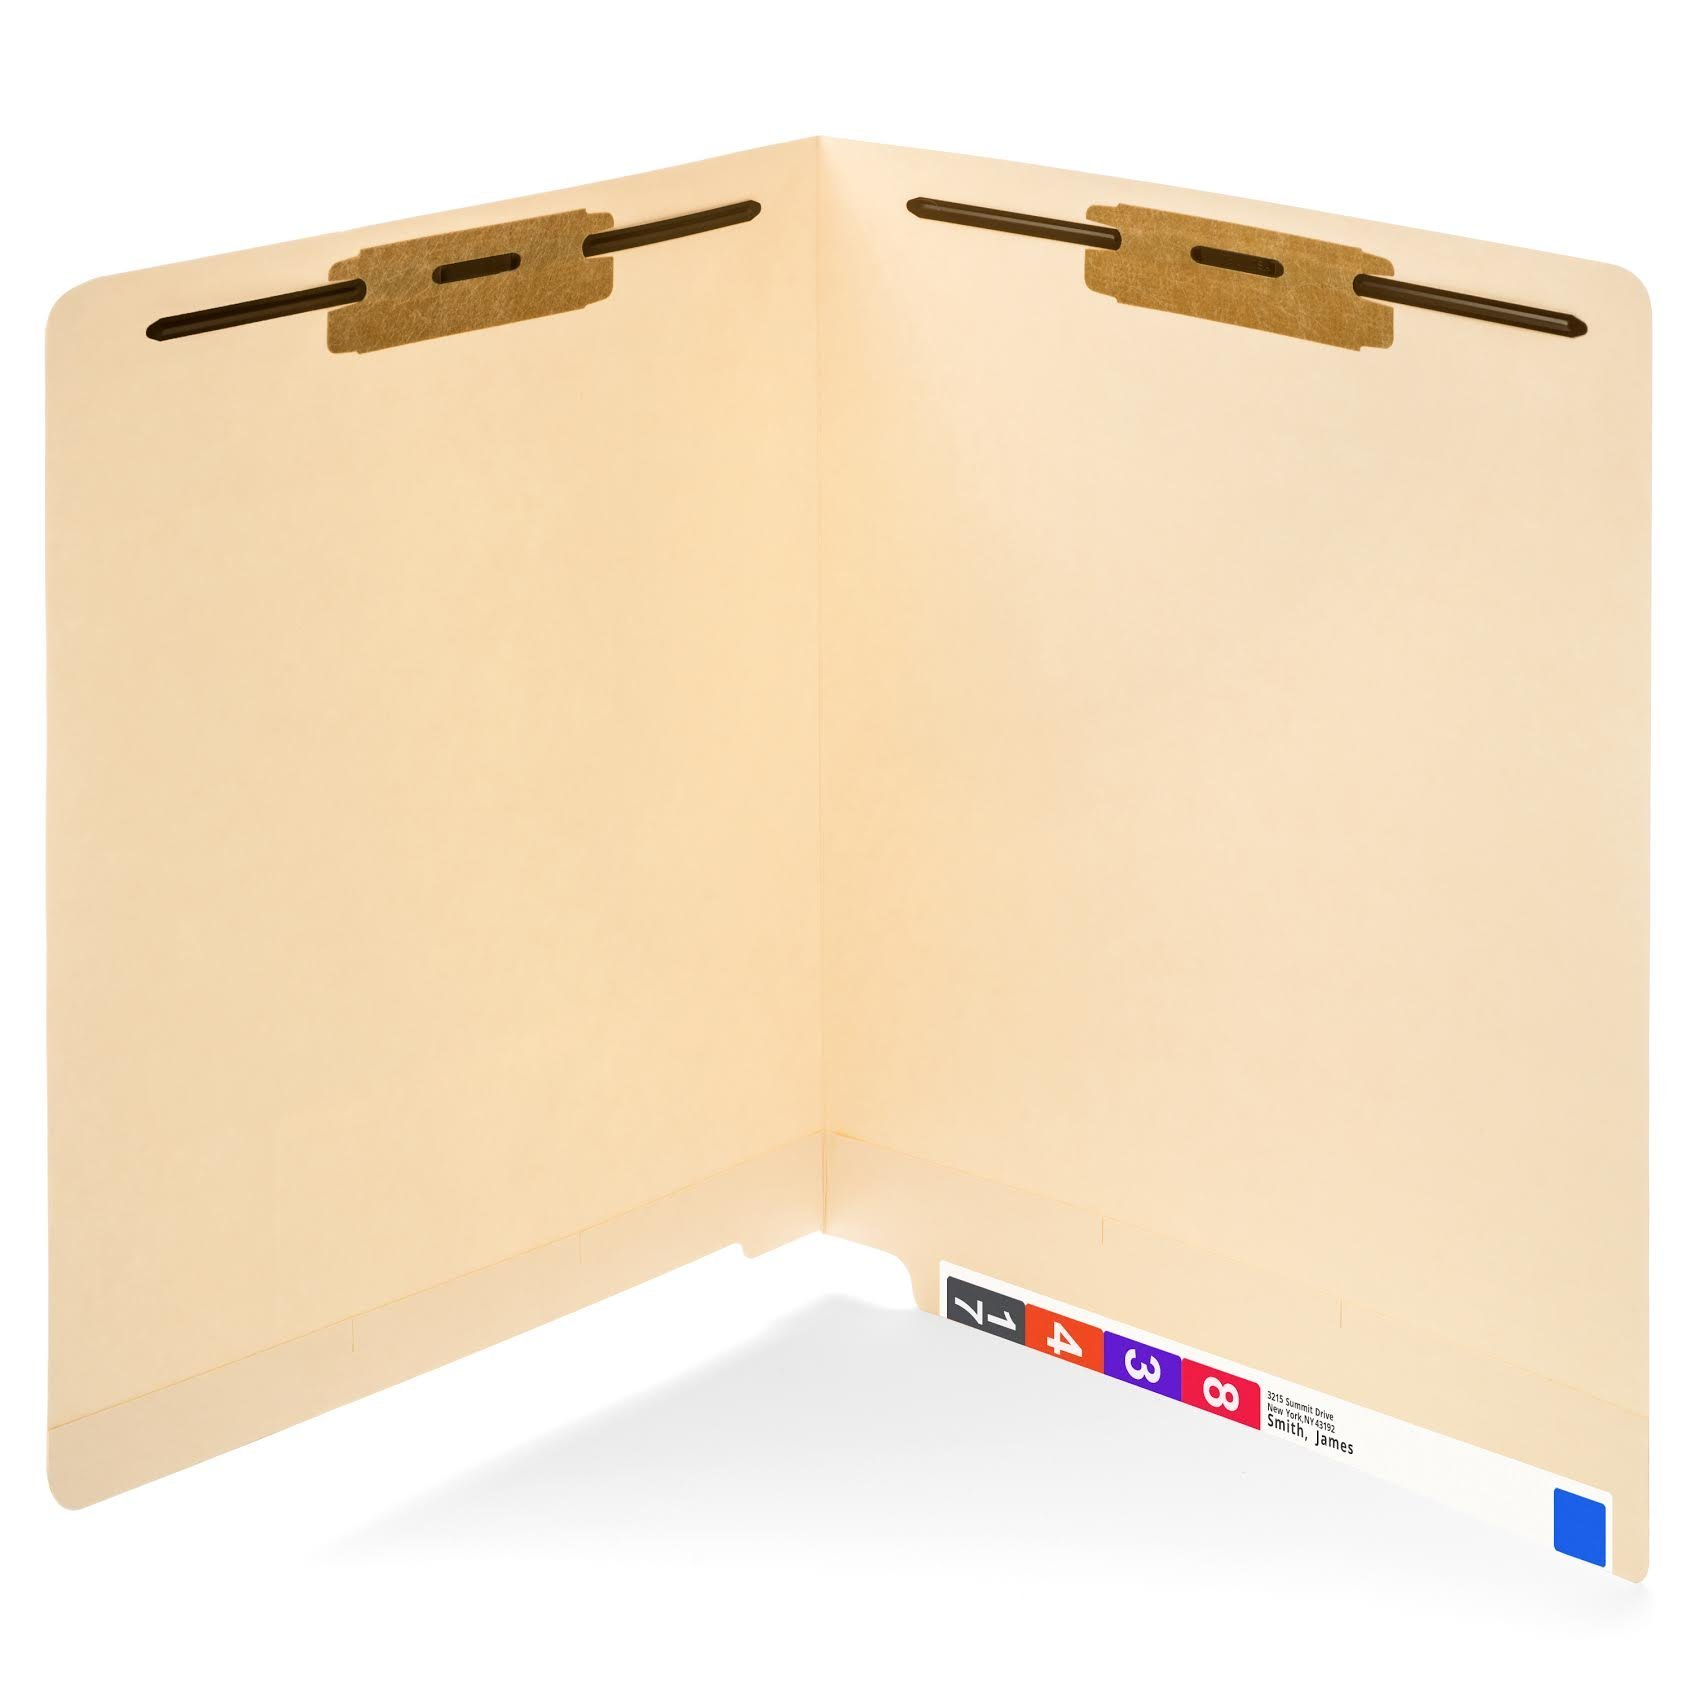 50 End Tab Fastener File Folders- Reinforced Straight Cut tab- Designed to organize standard medical files and office documents- Letter Size, Manila, 50 PACK